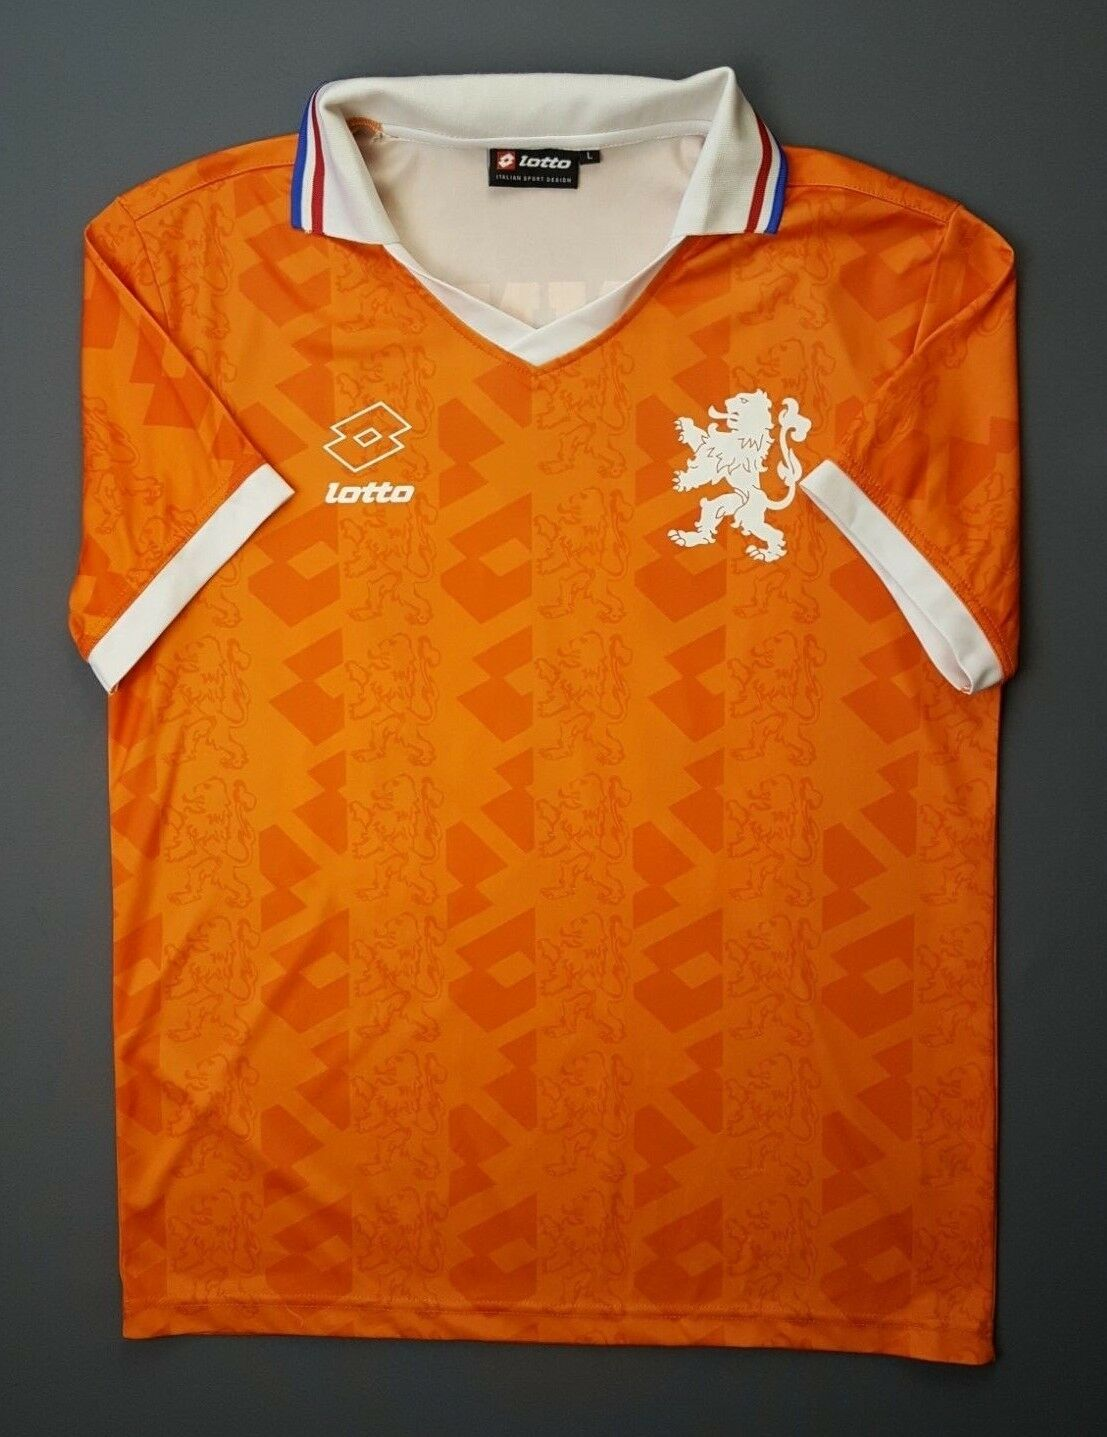 4.9 5 Holland Netherlands jersey fun version LARGE 1992 1993 home shirt Lotto